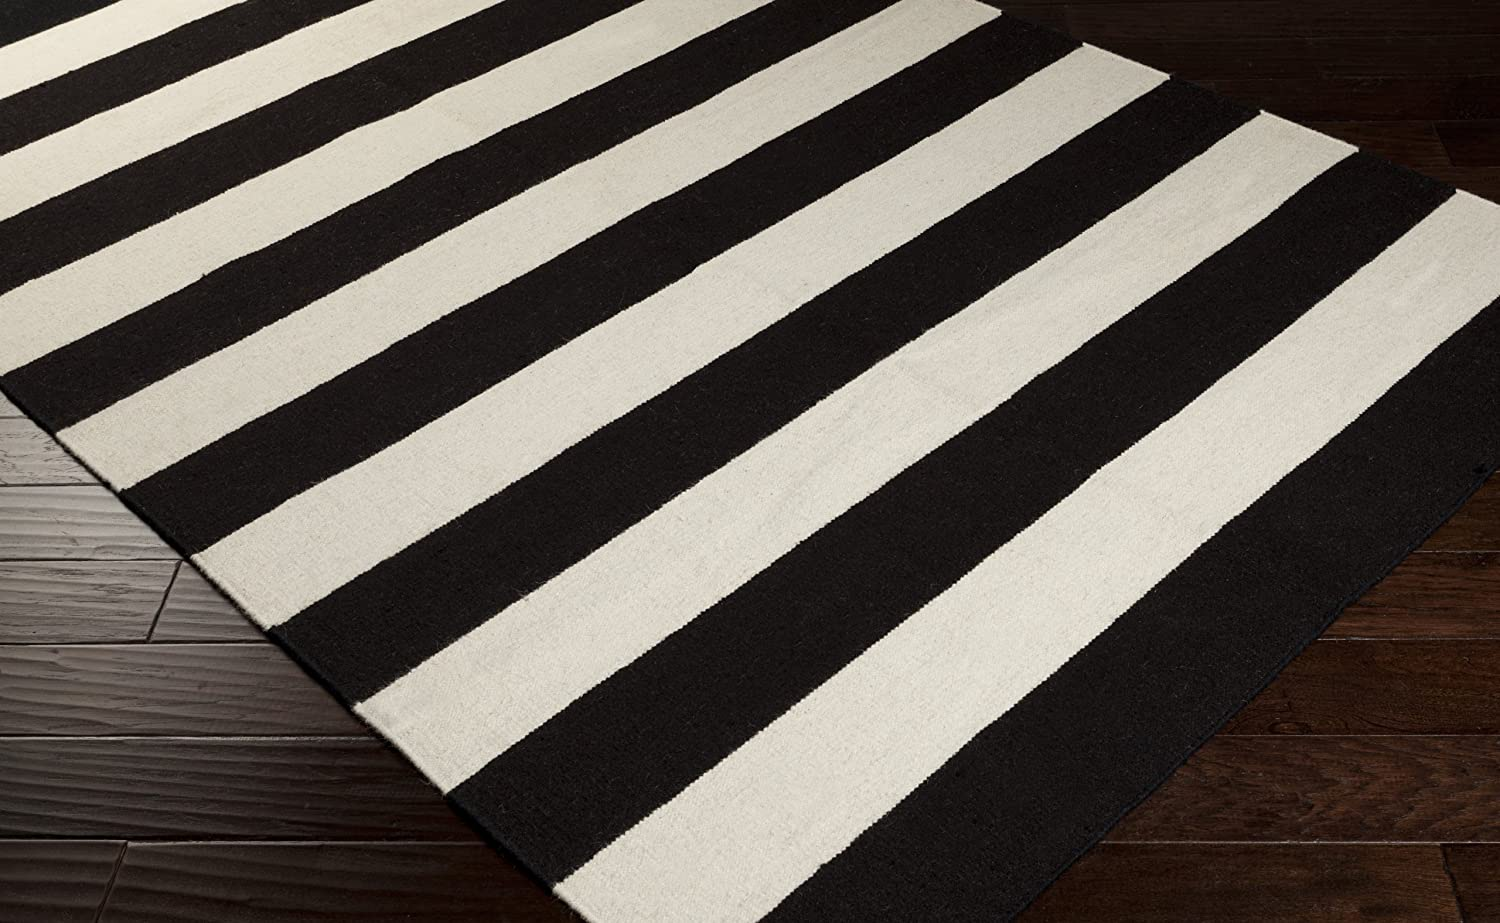 barrel black grey and olin dhurrie cotton crate rug striped white